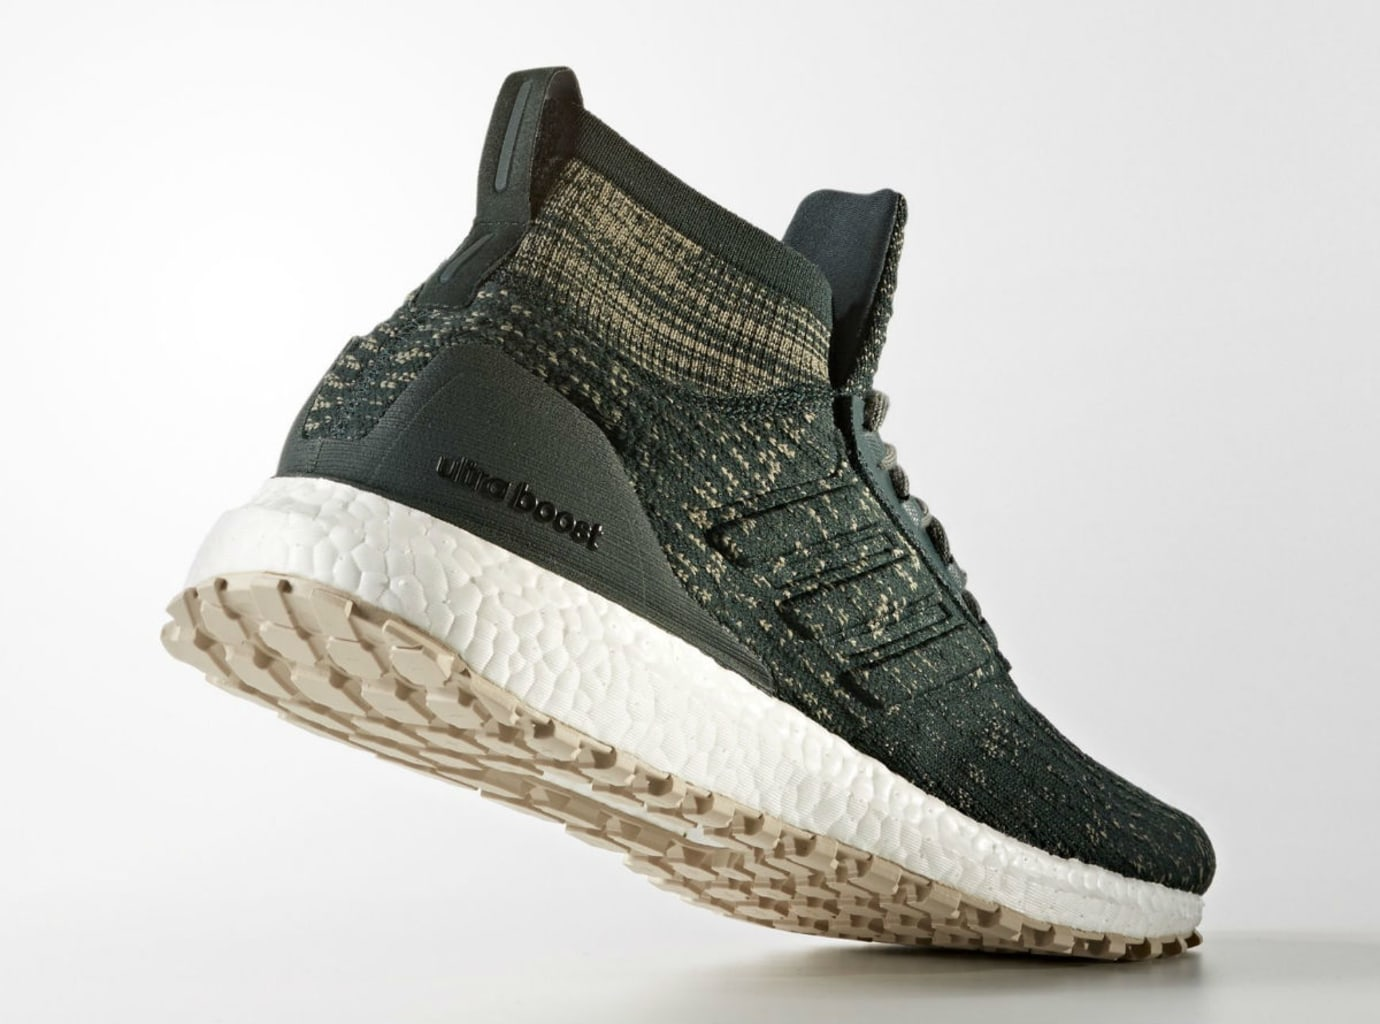 Adidas Ultra Boost ATR Mid Green Tan Release Date Lateral